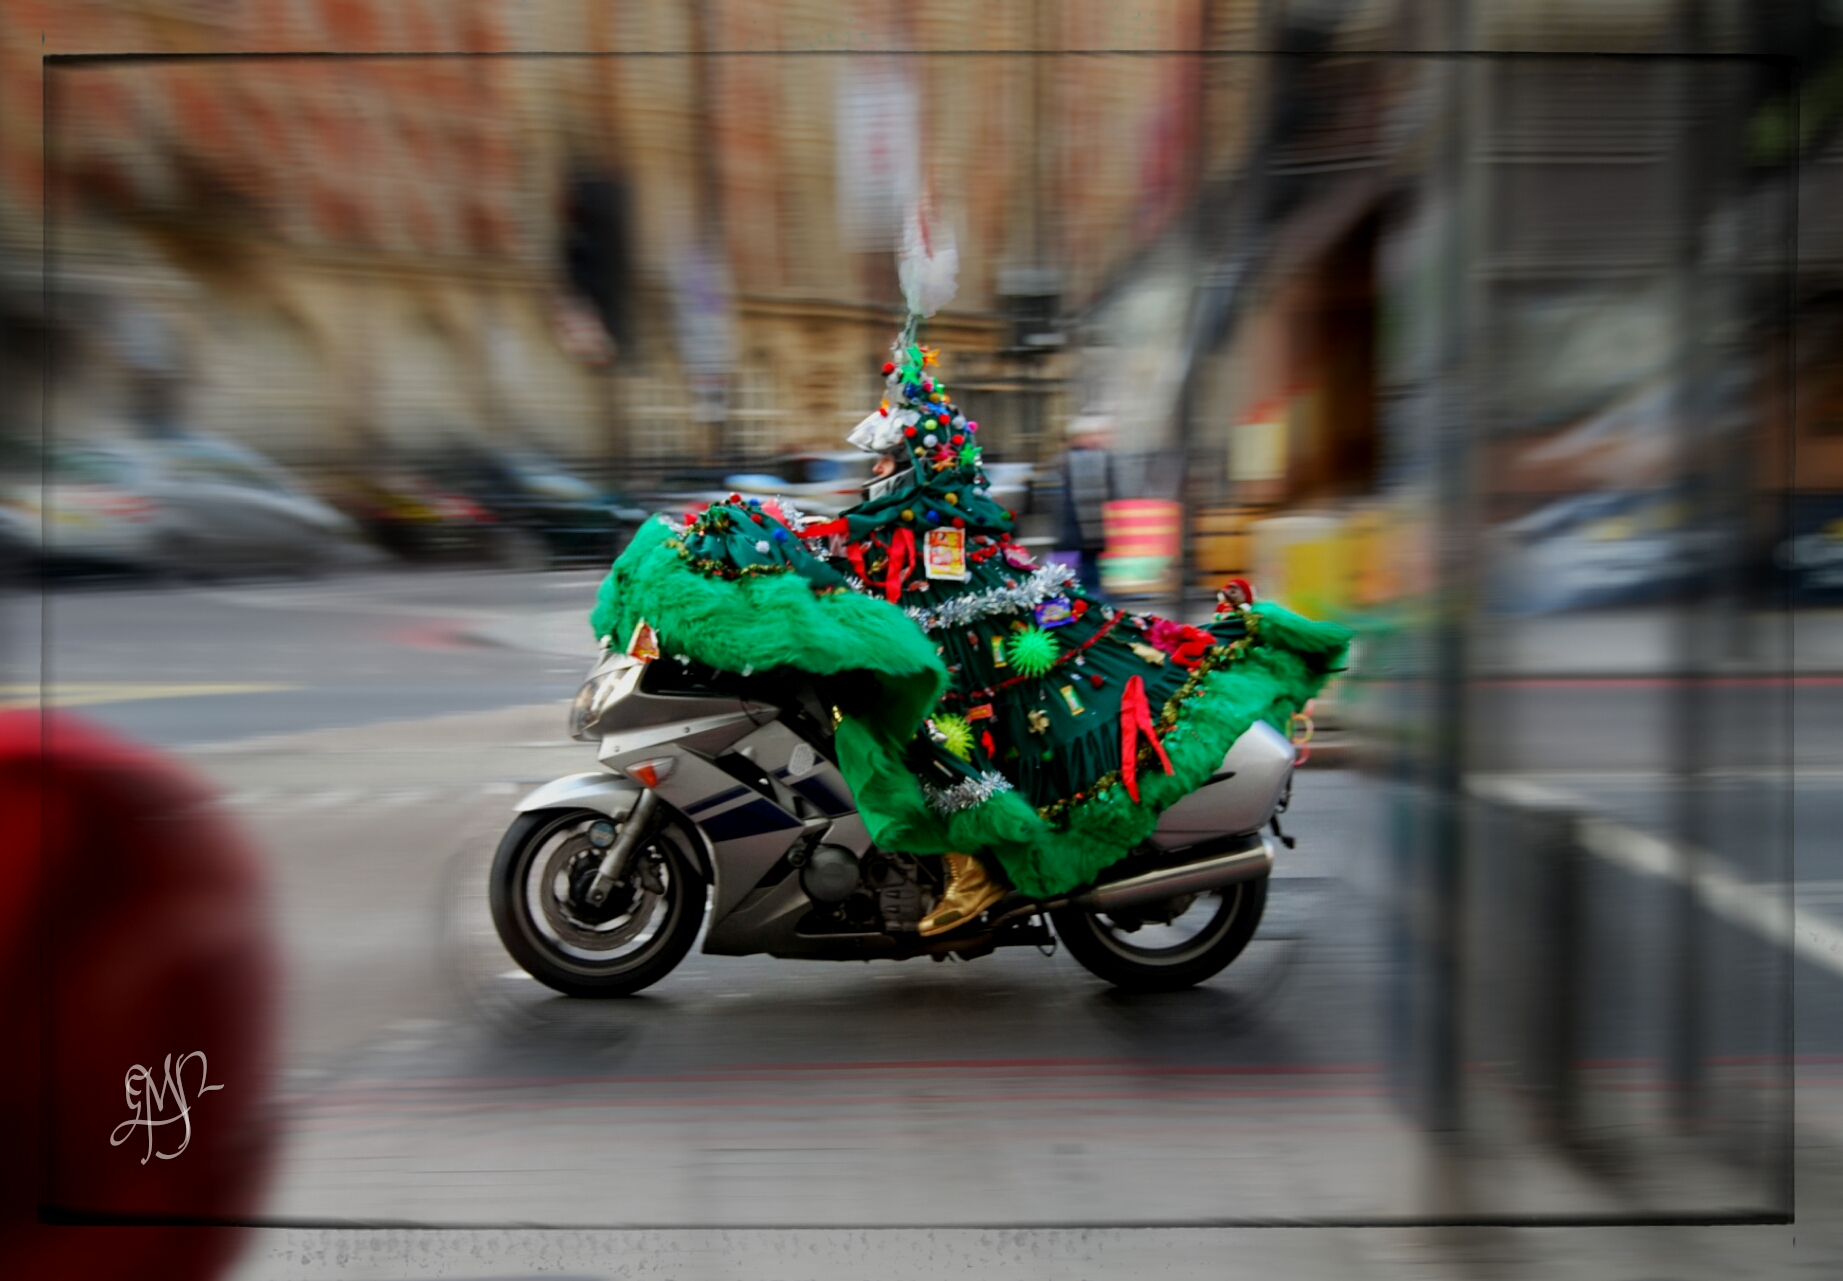 Step by step tutorial on motion blur photo effect in Picsart